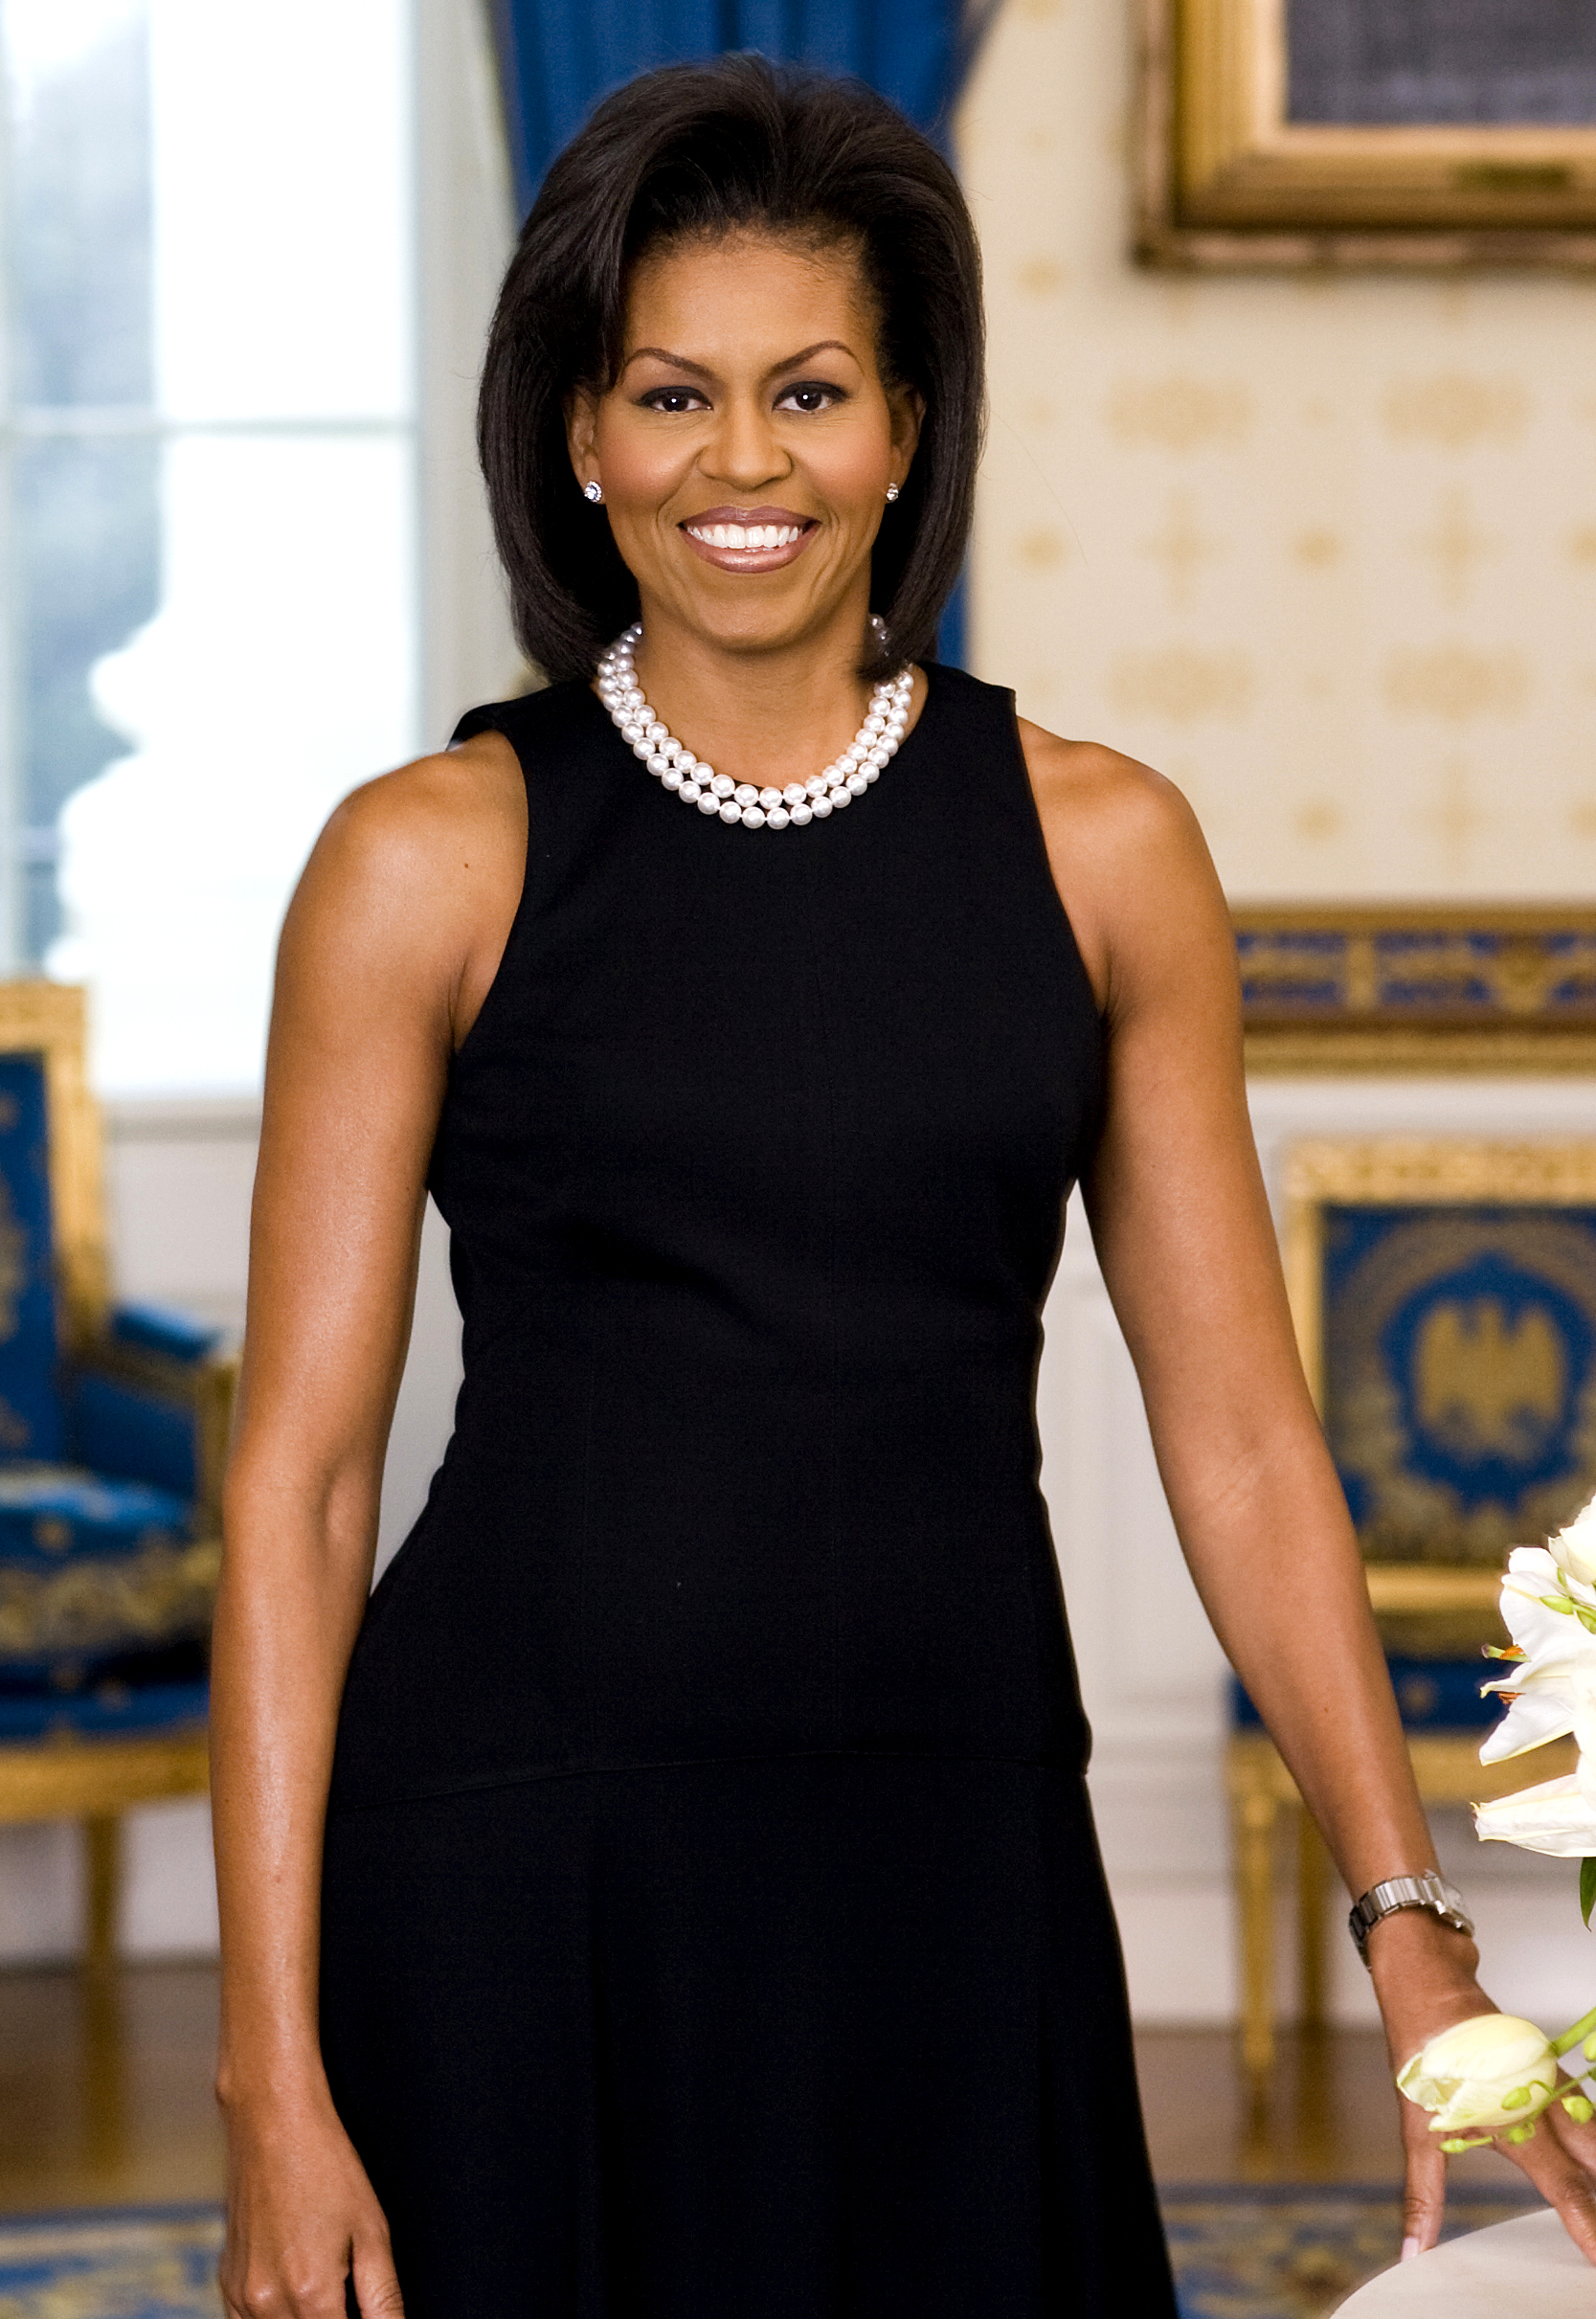 File:Michelle Obama official portrait crop.jpg - Wikimedia Commons